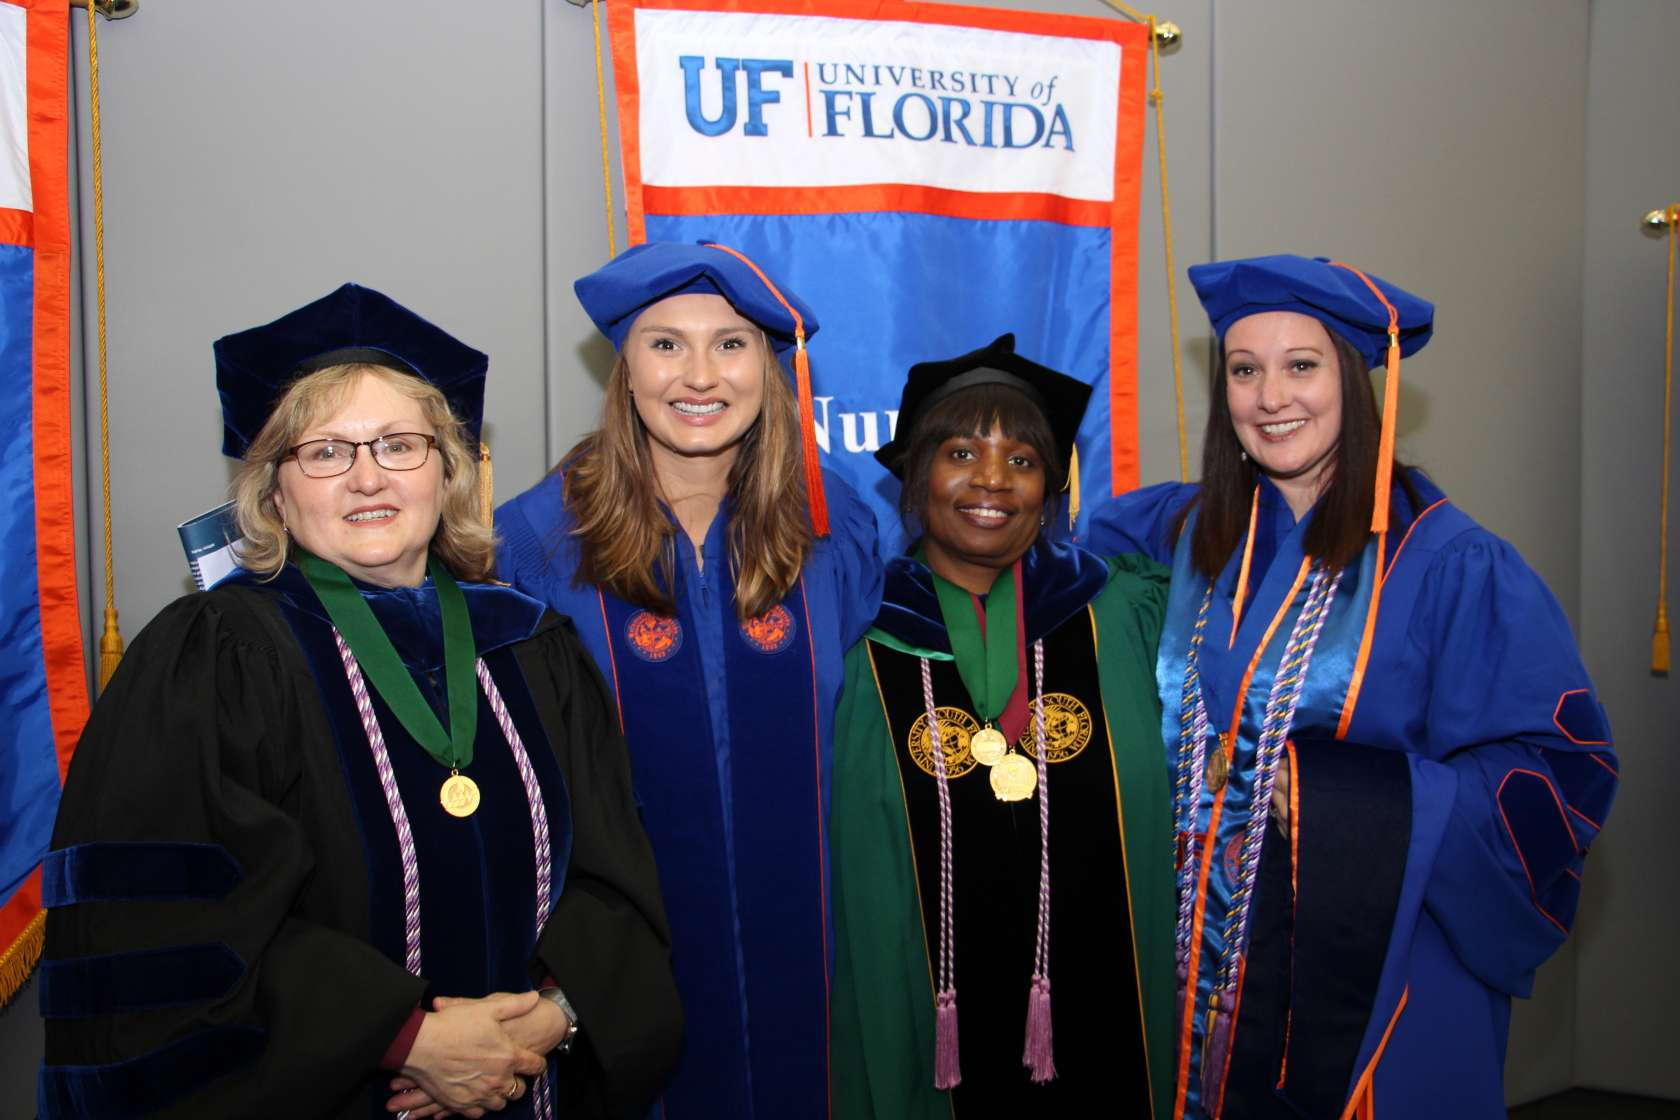 Doctoral commencement